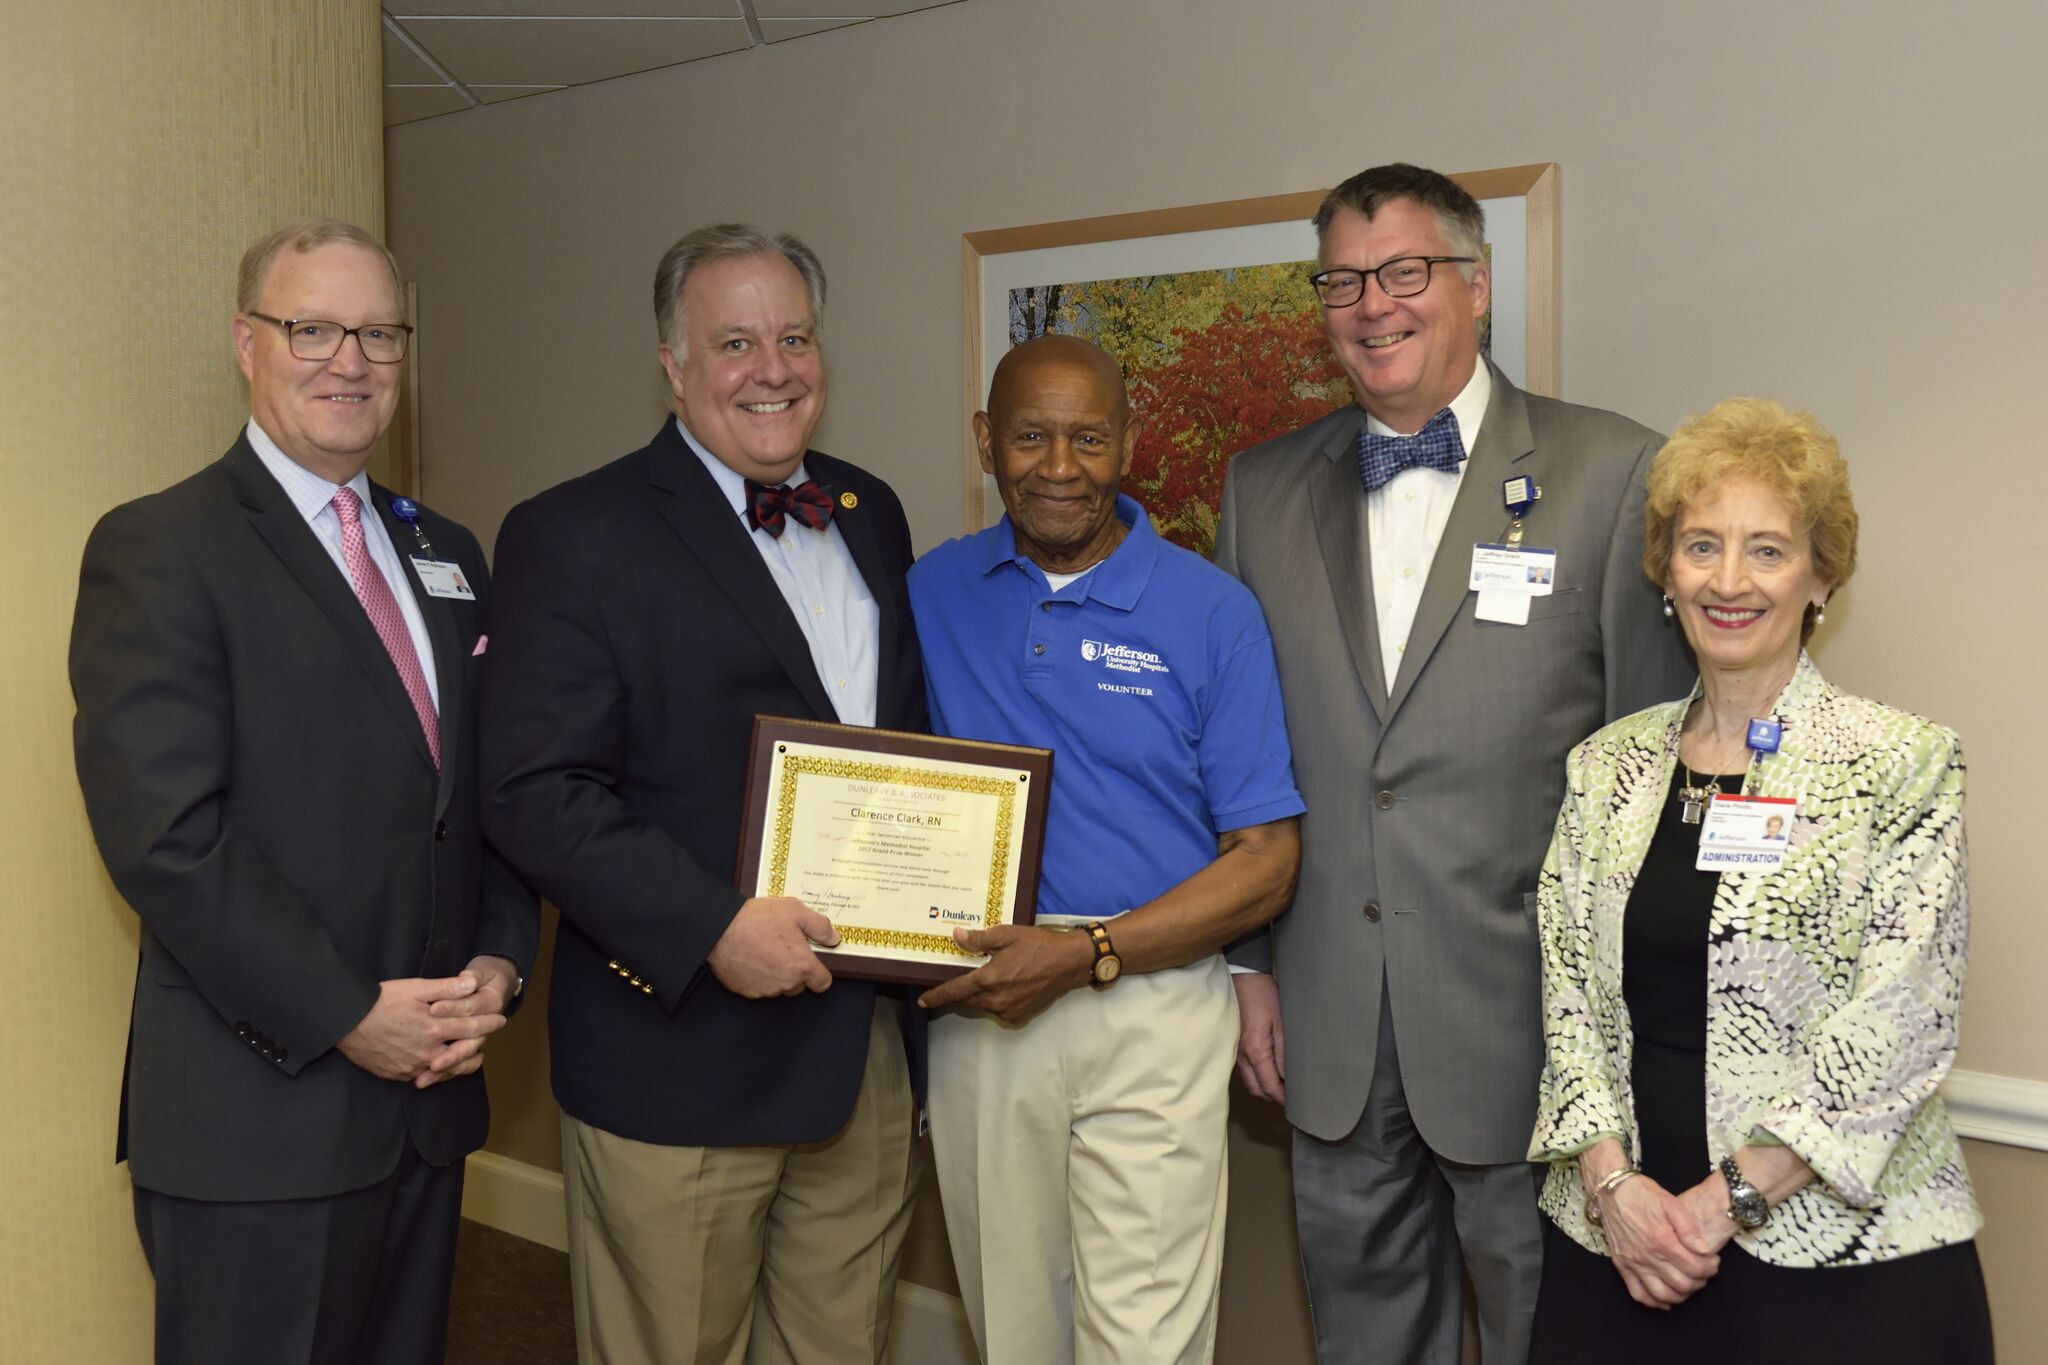 Presenation of the Grand Prize to Clarence Clark, RN of Jefferson's Methodist Hospital and hospital Board Members